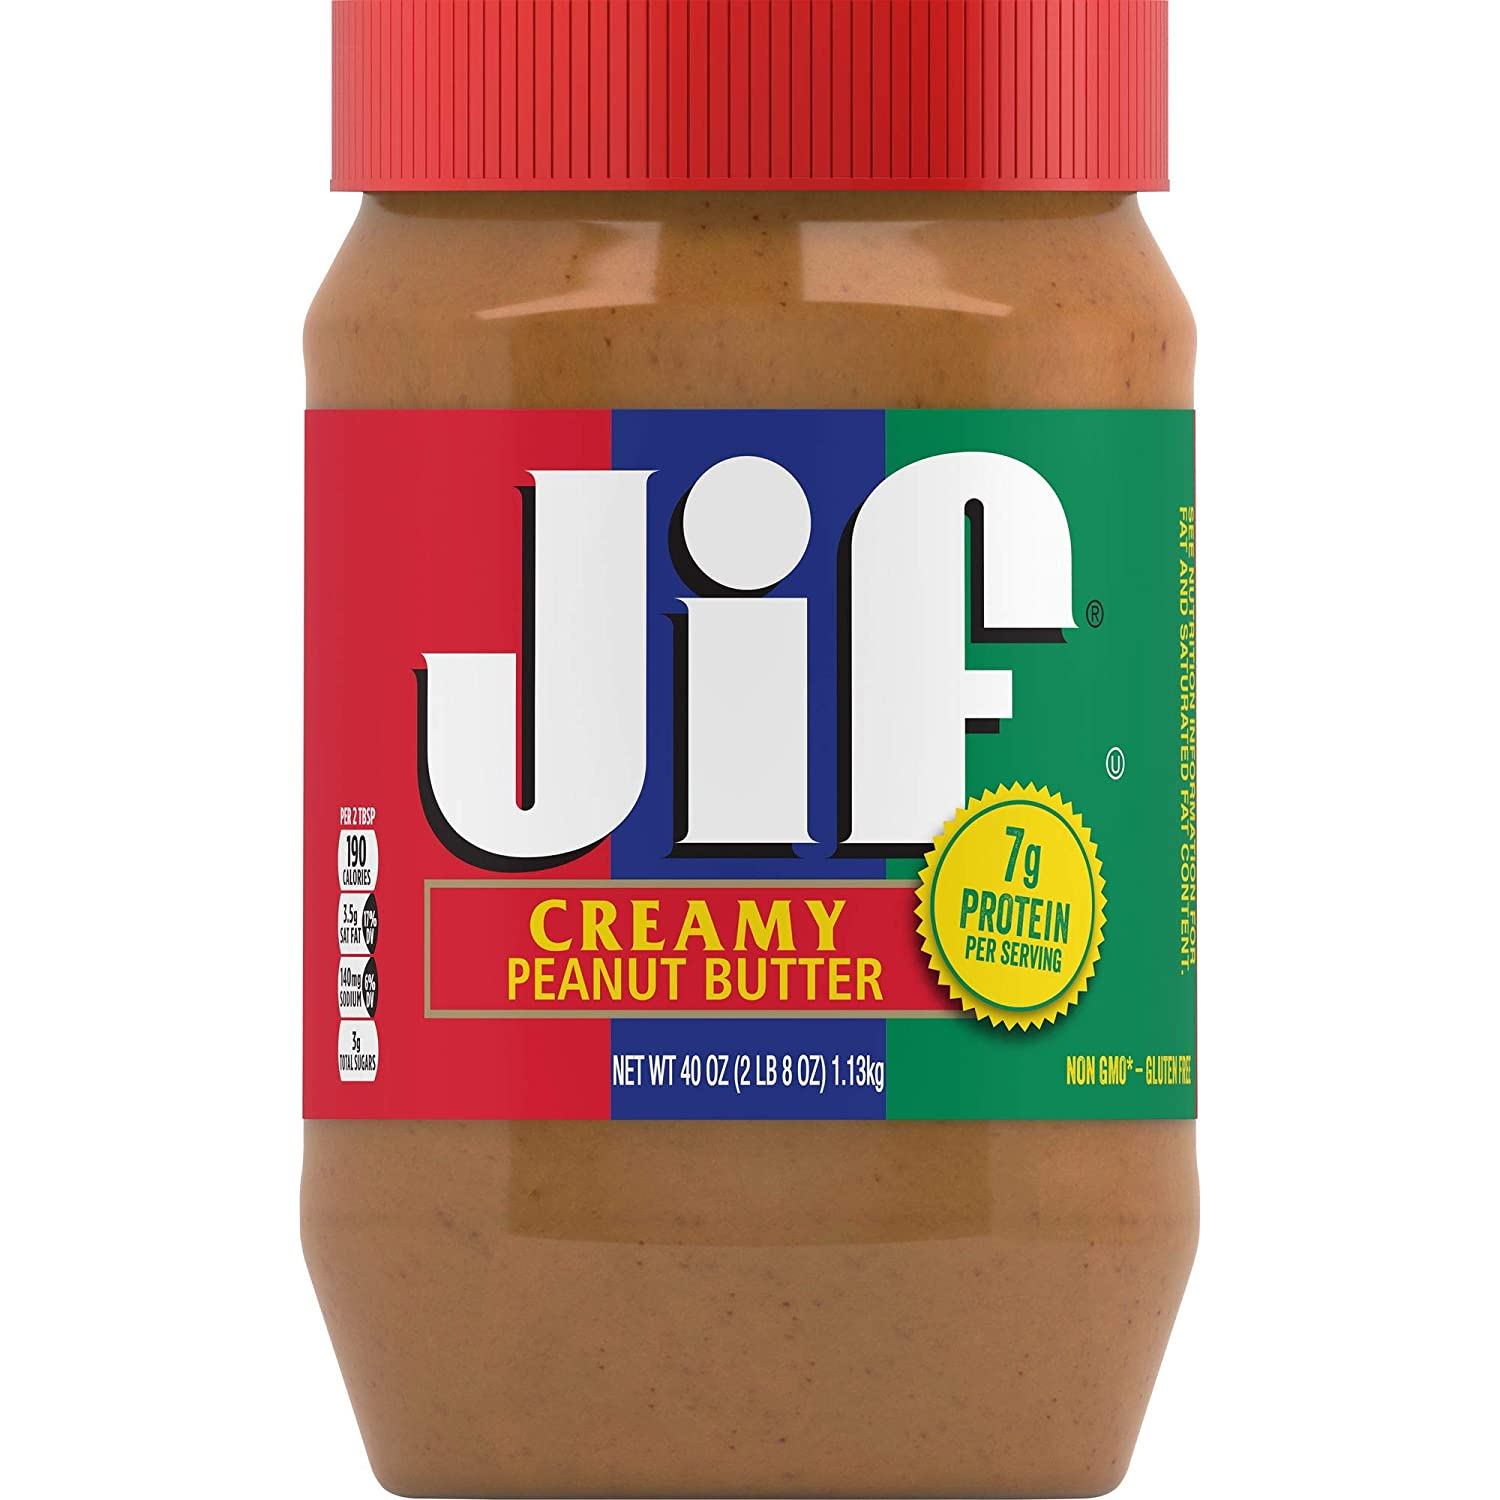 Jif Creamy Peanut Butter, 40 Ounces (Pack of 8), 7g (7% DV) of Protein per Serving, Smooth, Creamy Texture, No Stir Peanut Butter